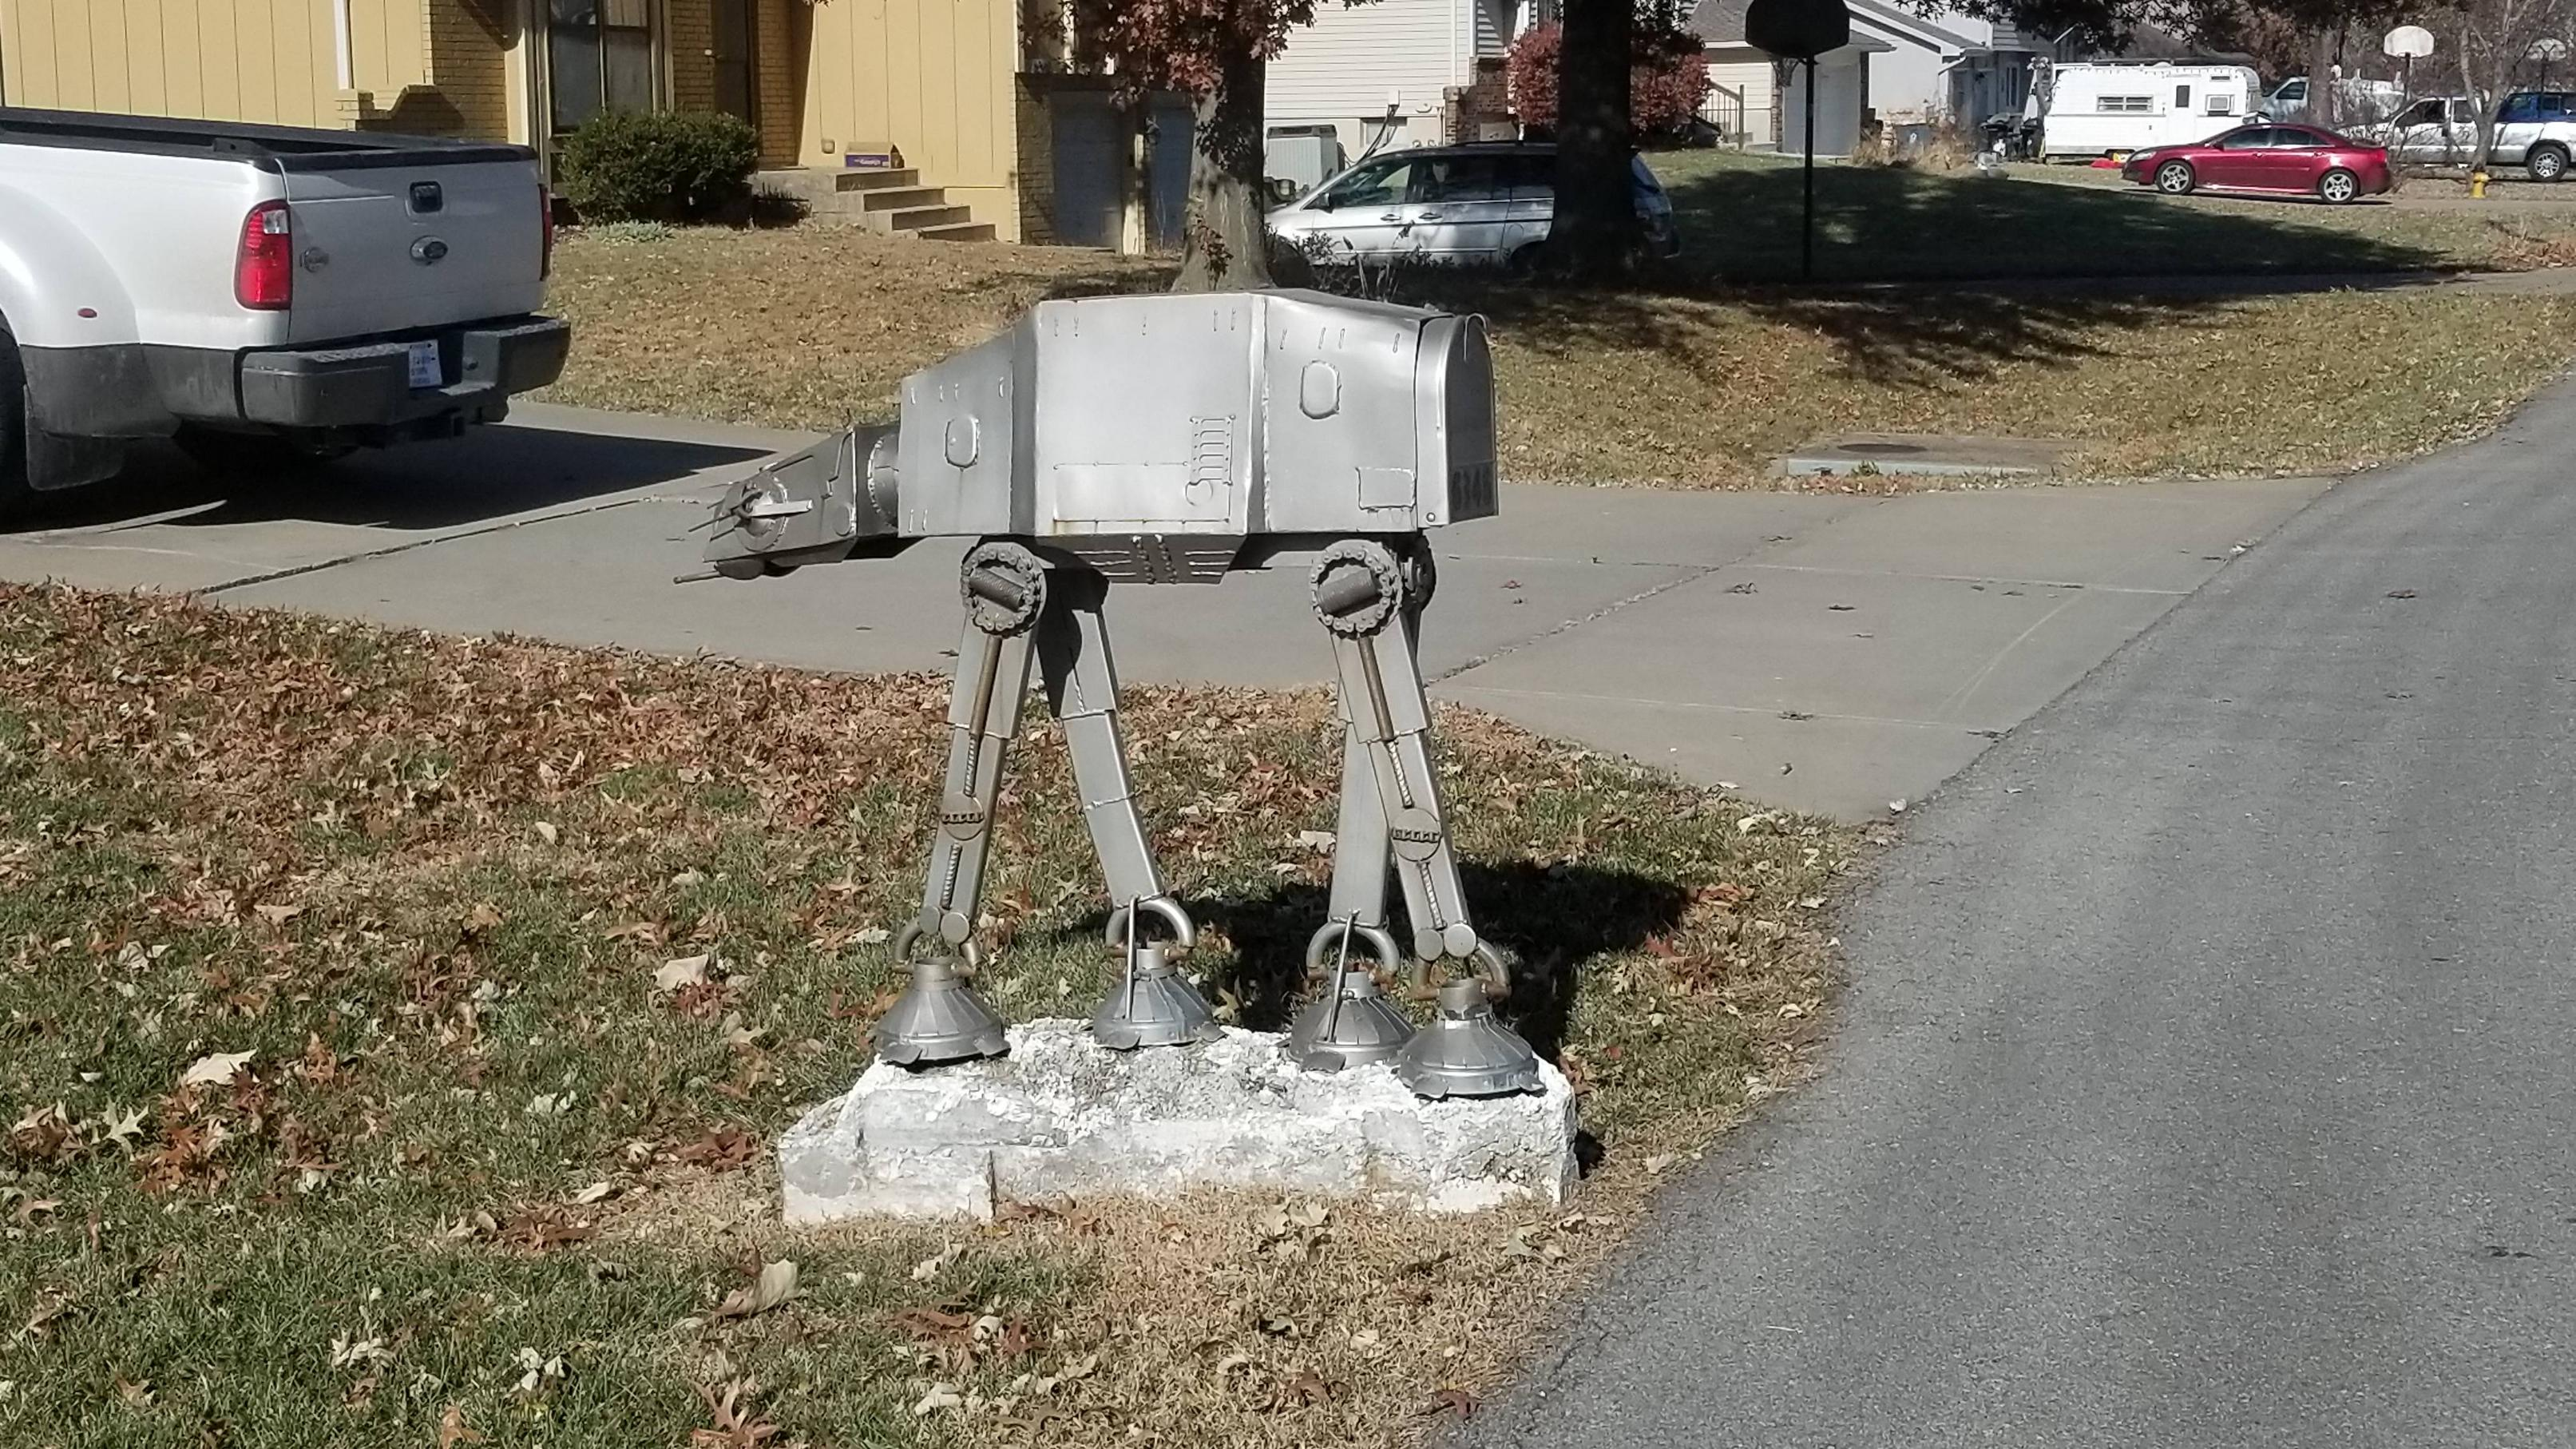 I see your neighbors AT-ST mailbox, and I raise you my neighbors AT-AT mailbox.